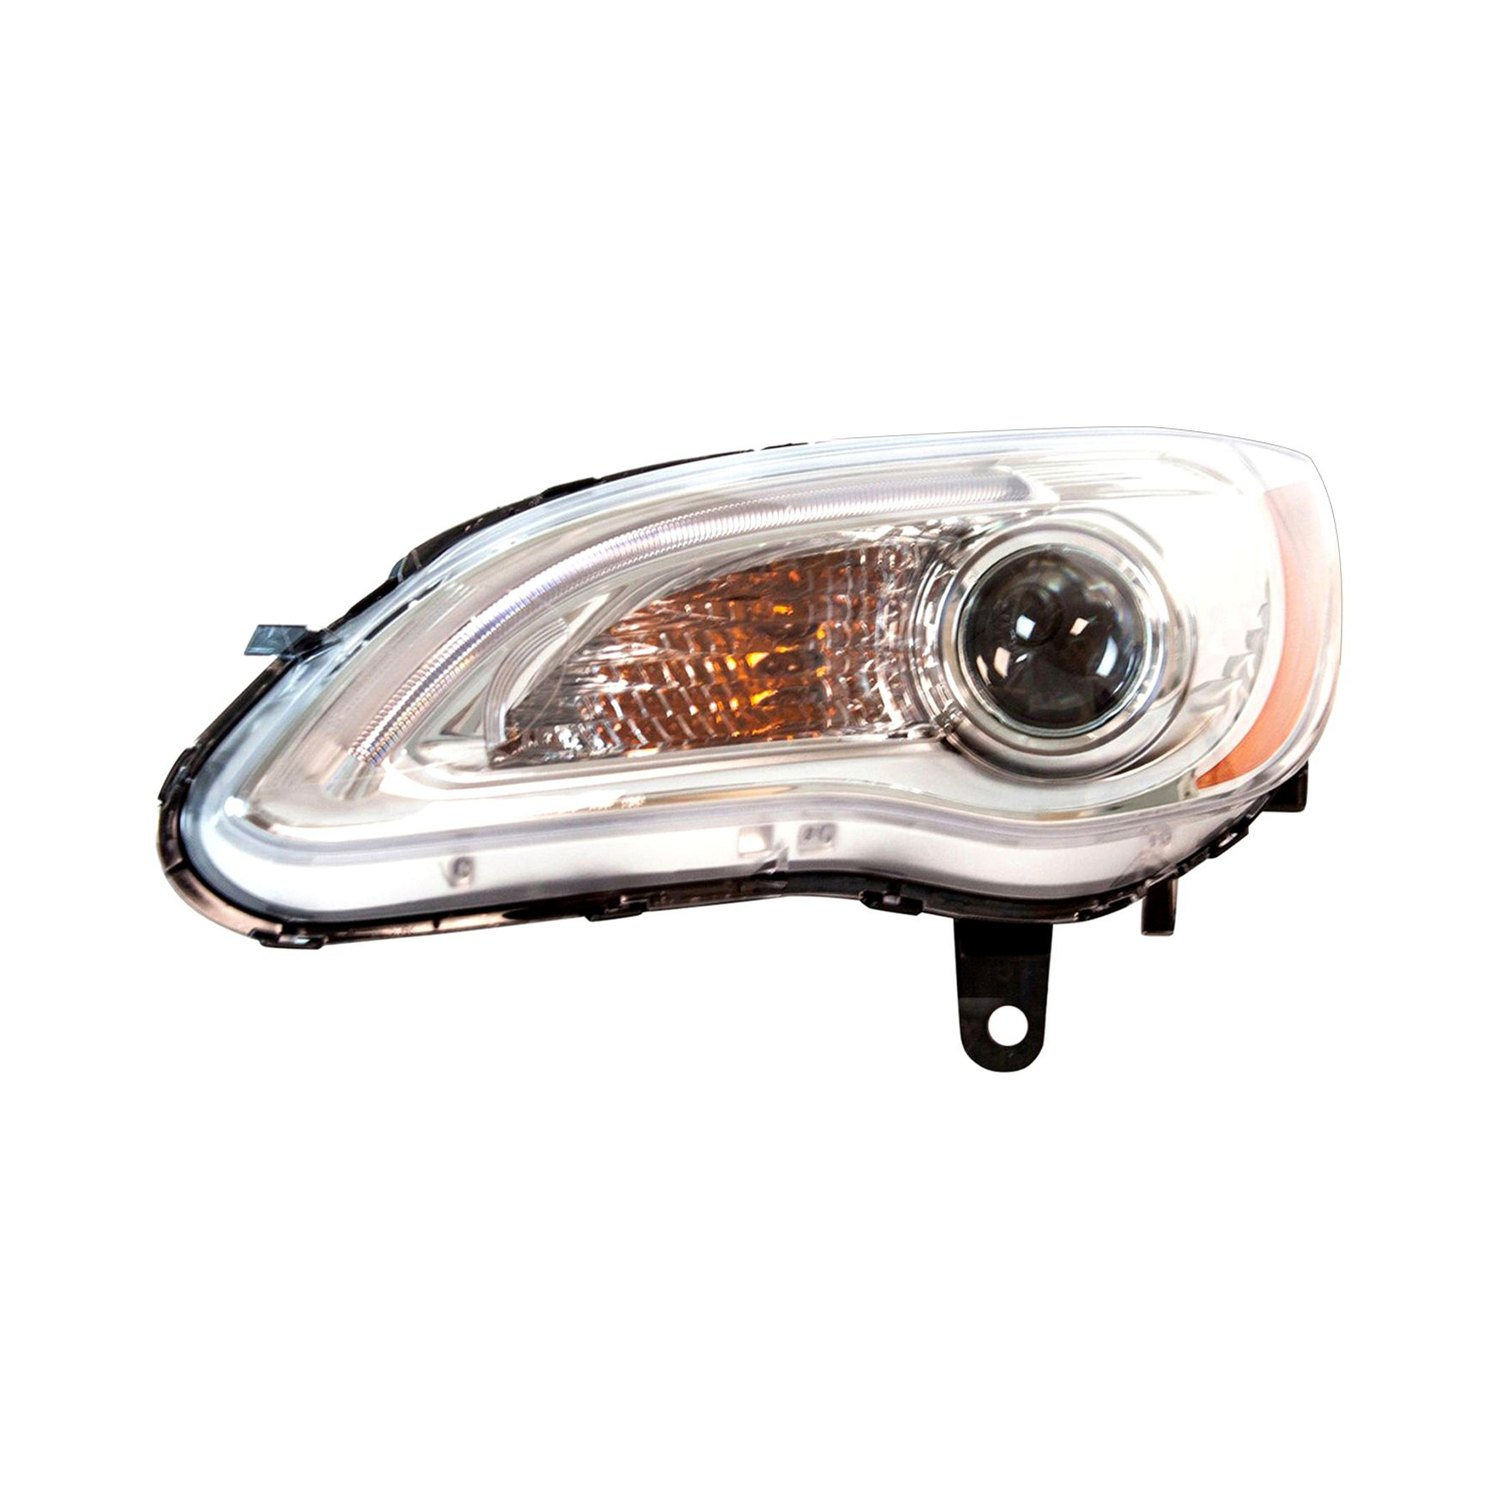 how to change headlight on a chrysler 200